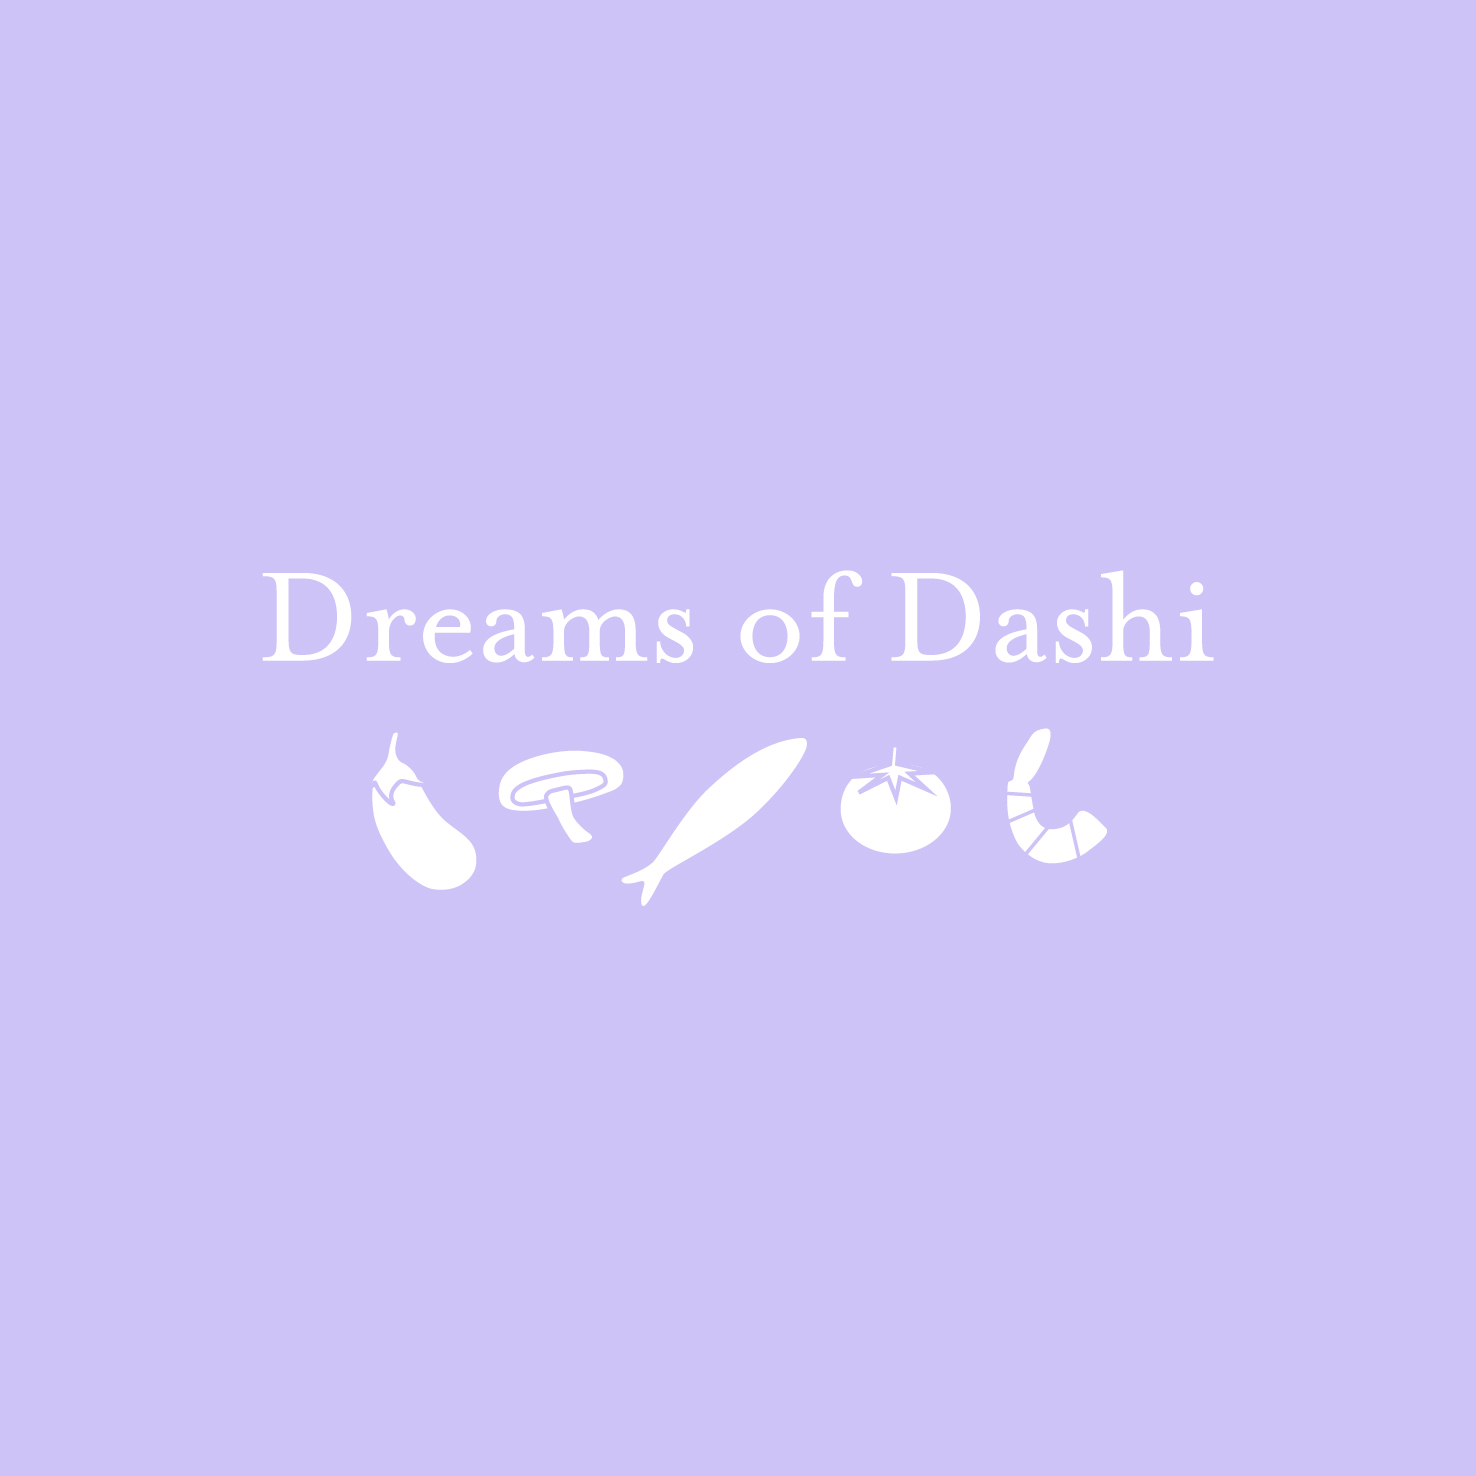 Dreams of Dashi